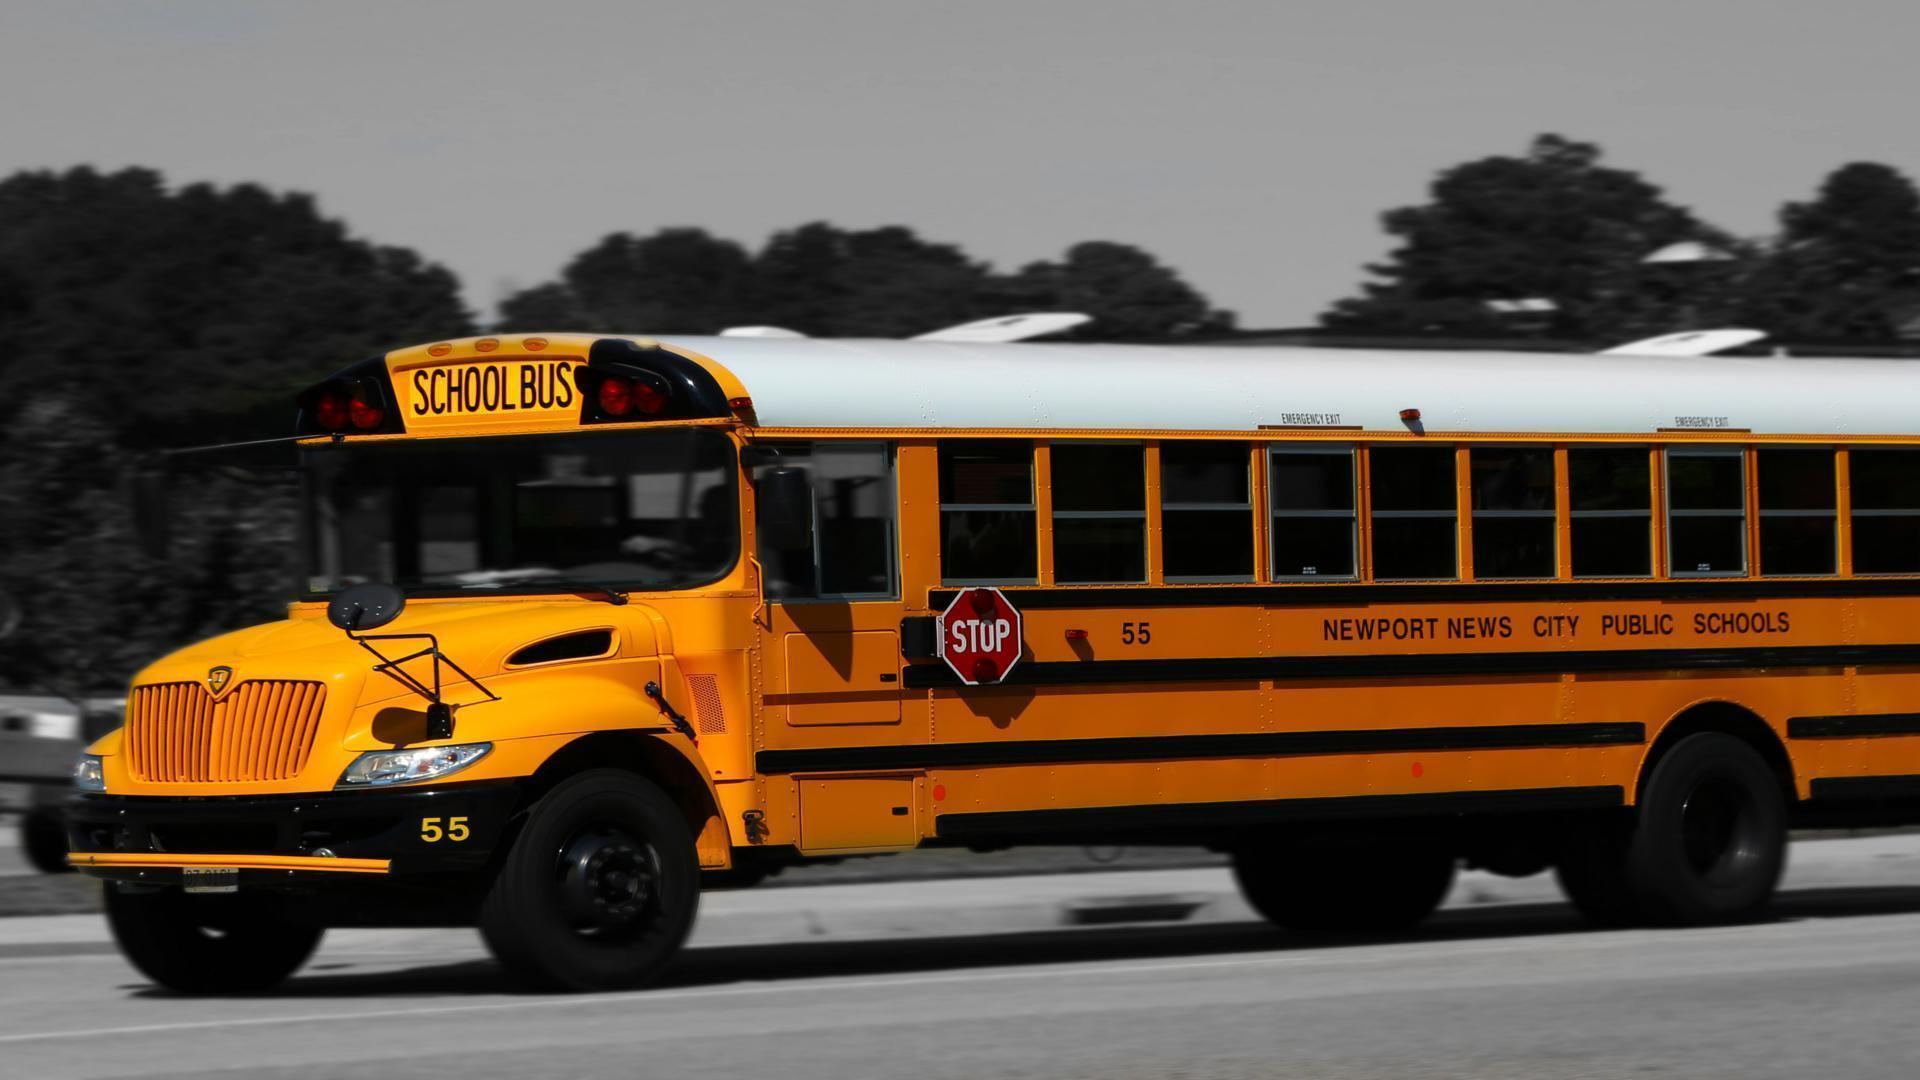 Image For > School Bus Wallpapers